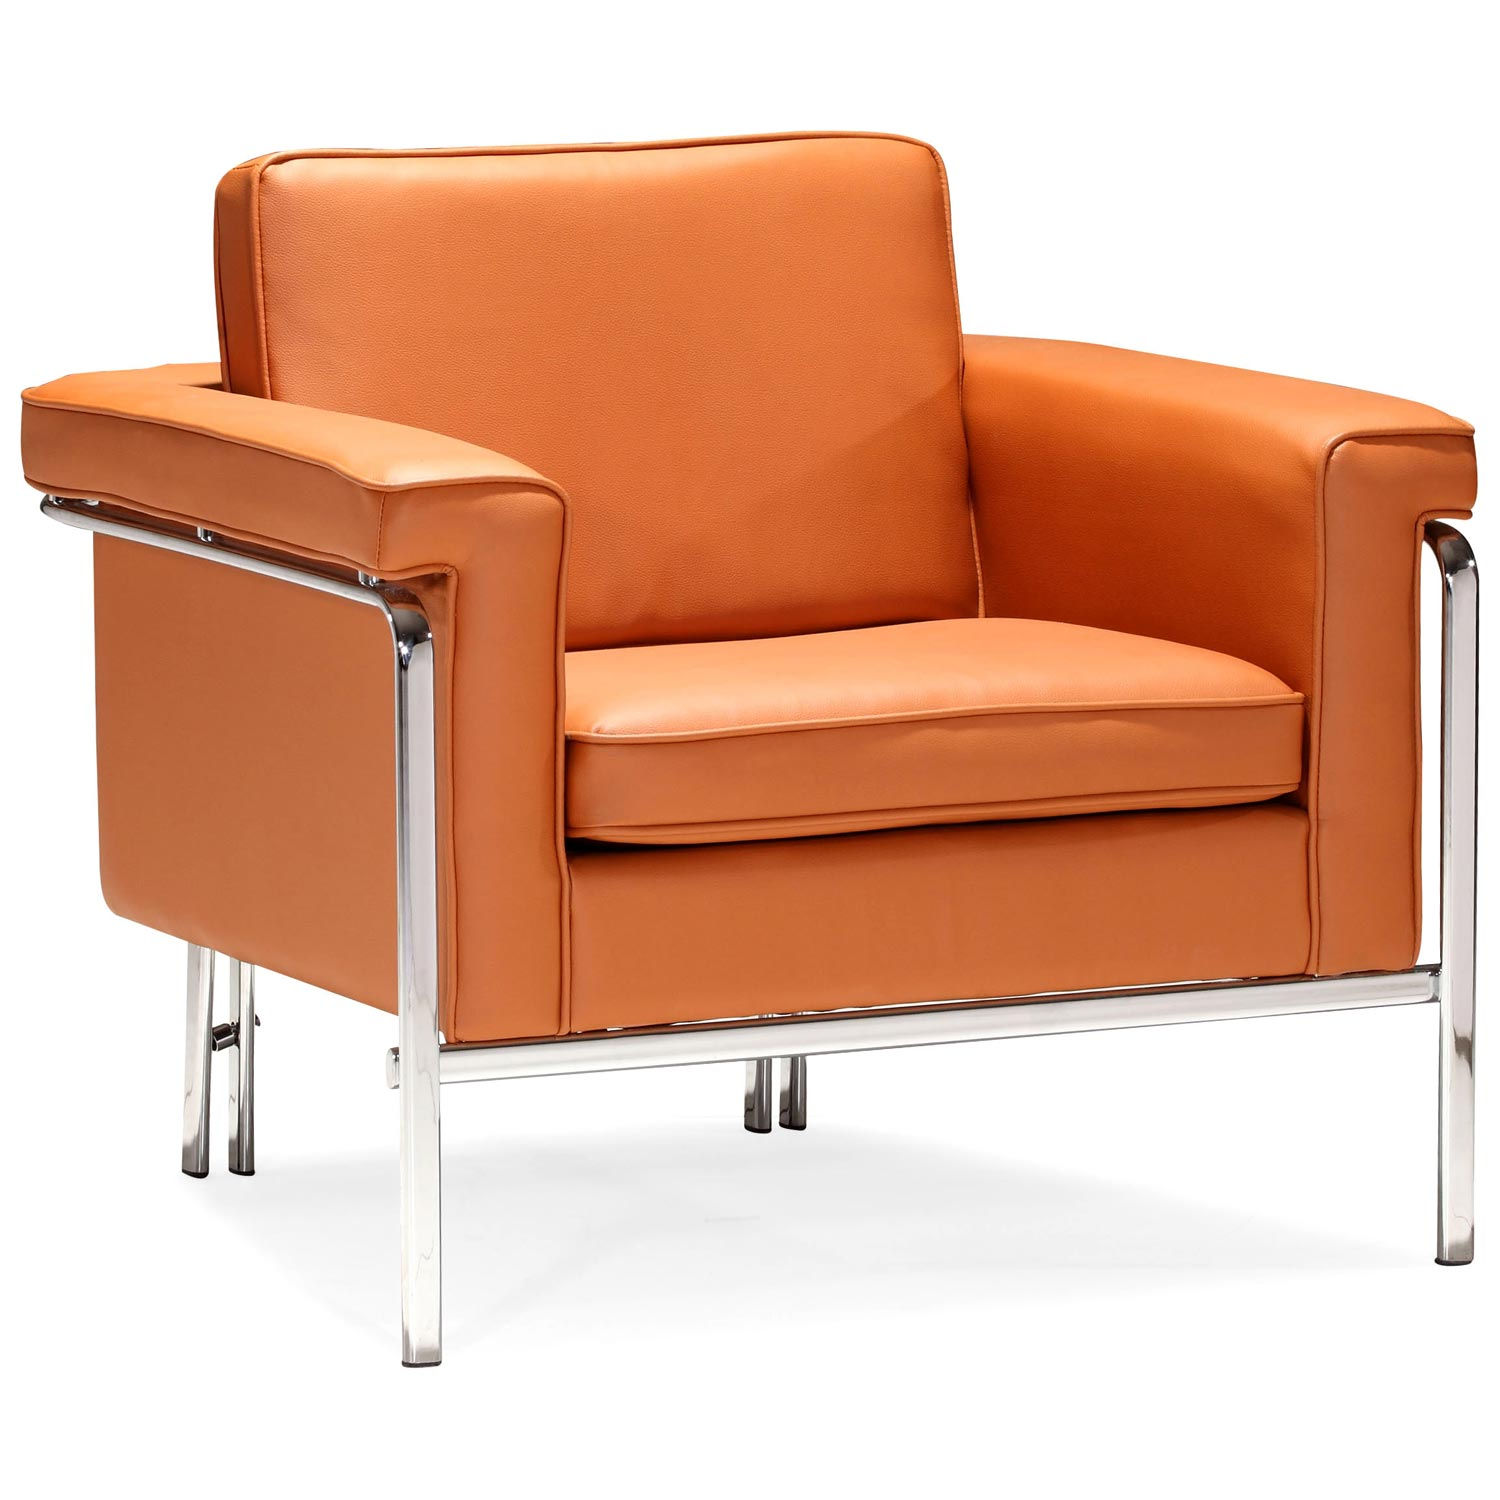 Singular Modern Armchair - Chrome Steel, Terracotta - ZM-900162